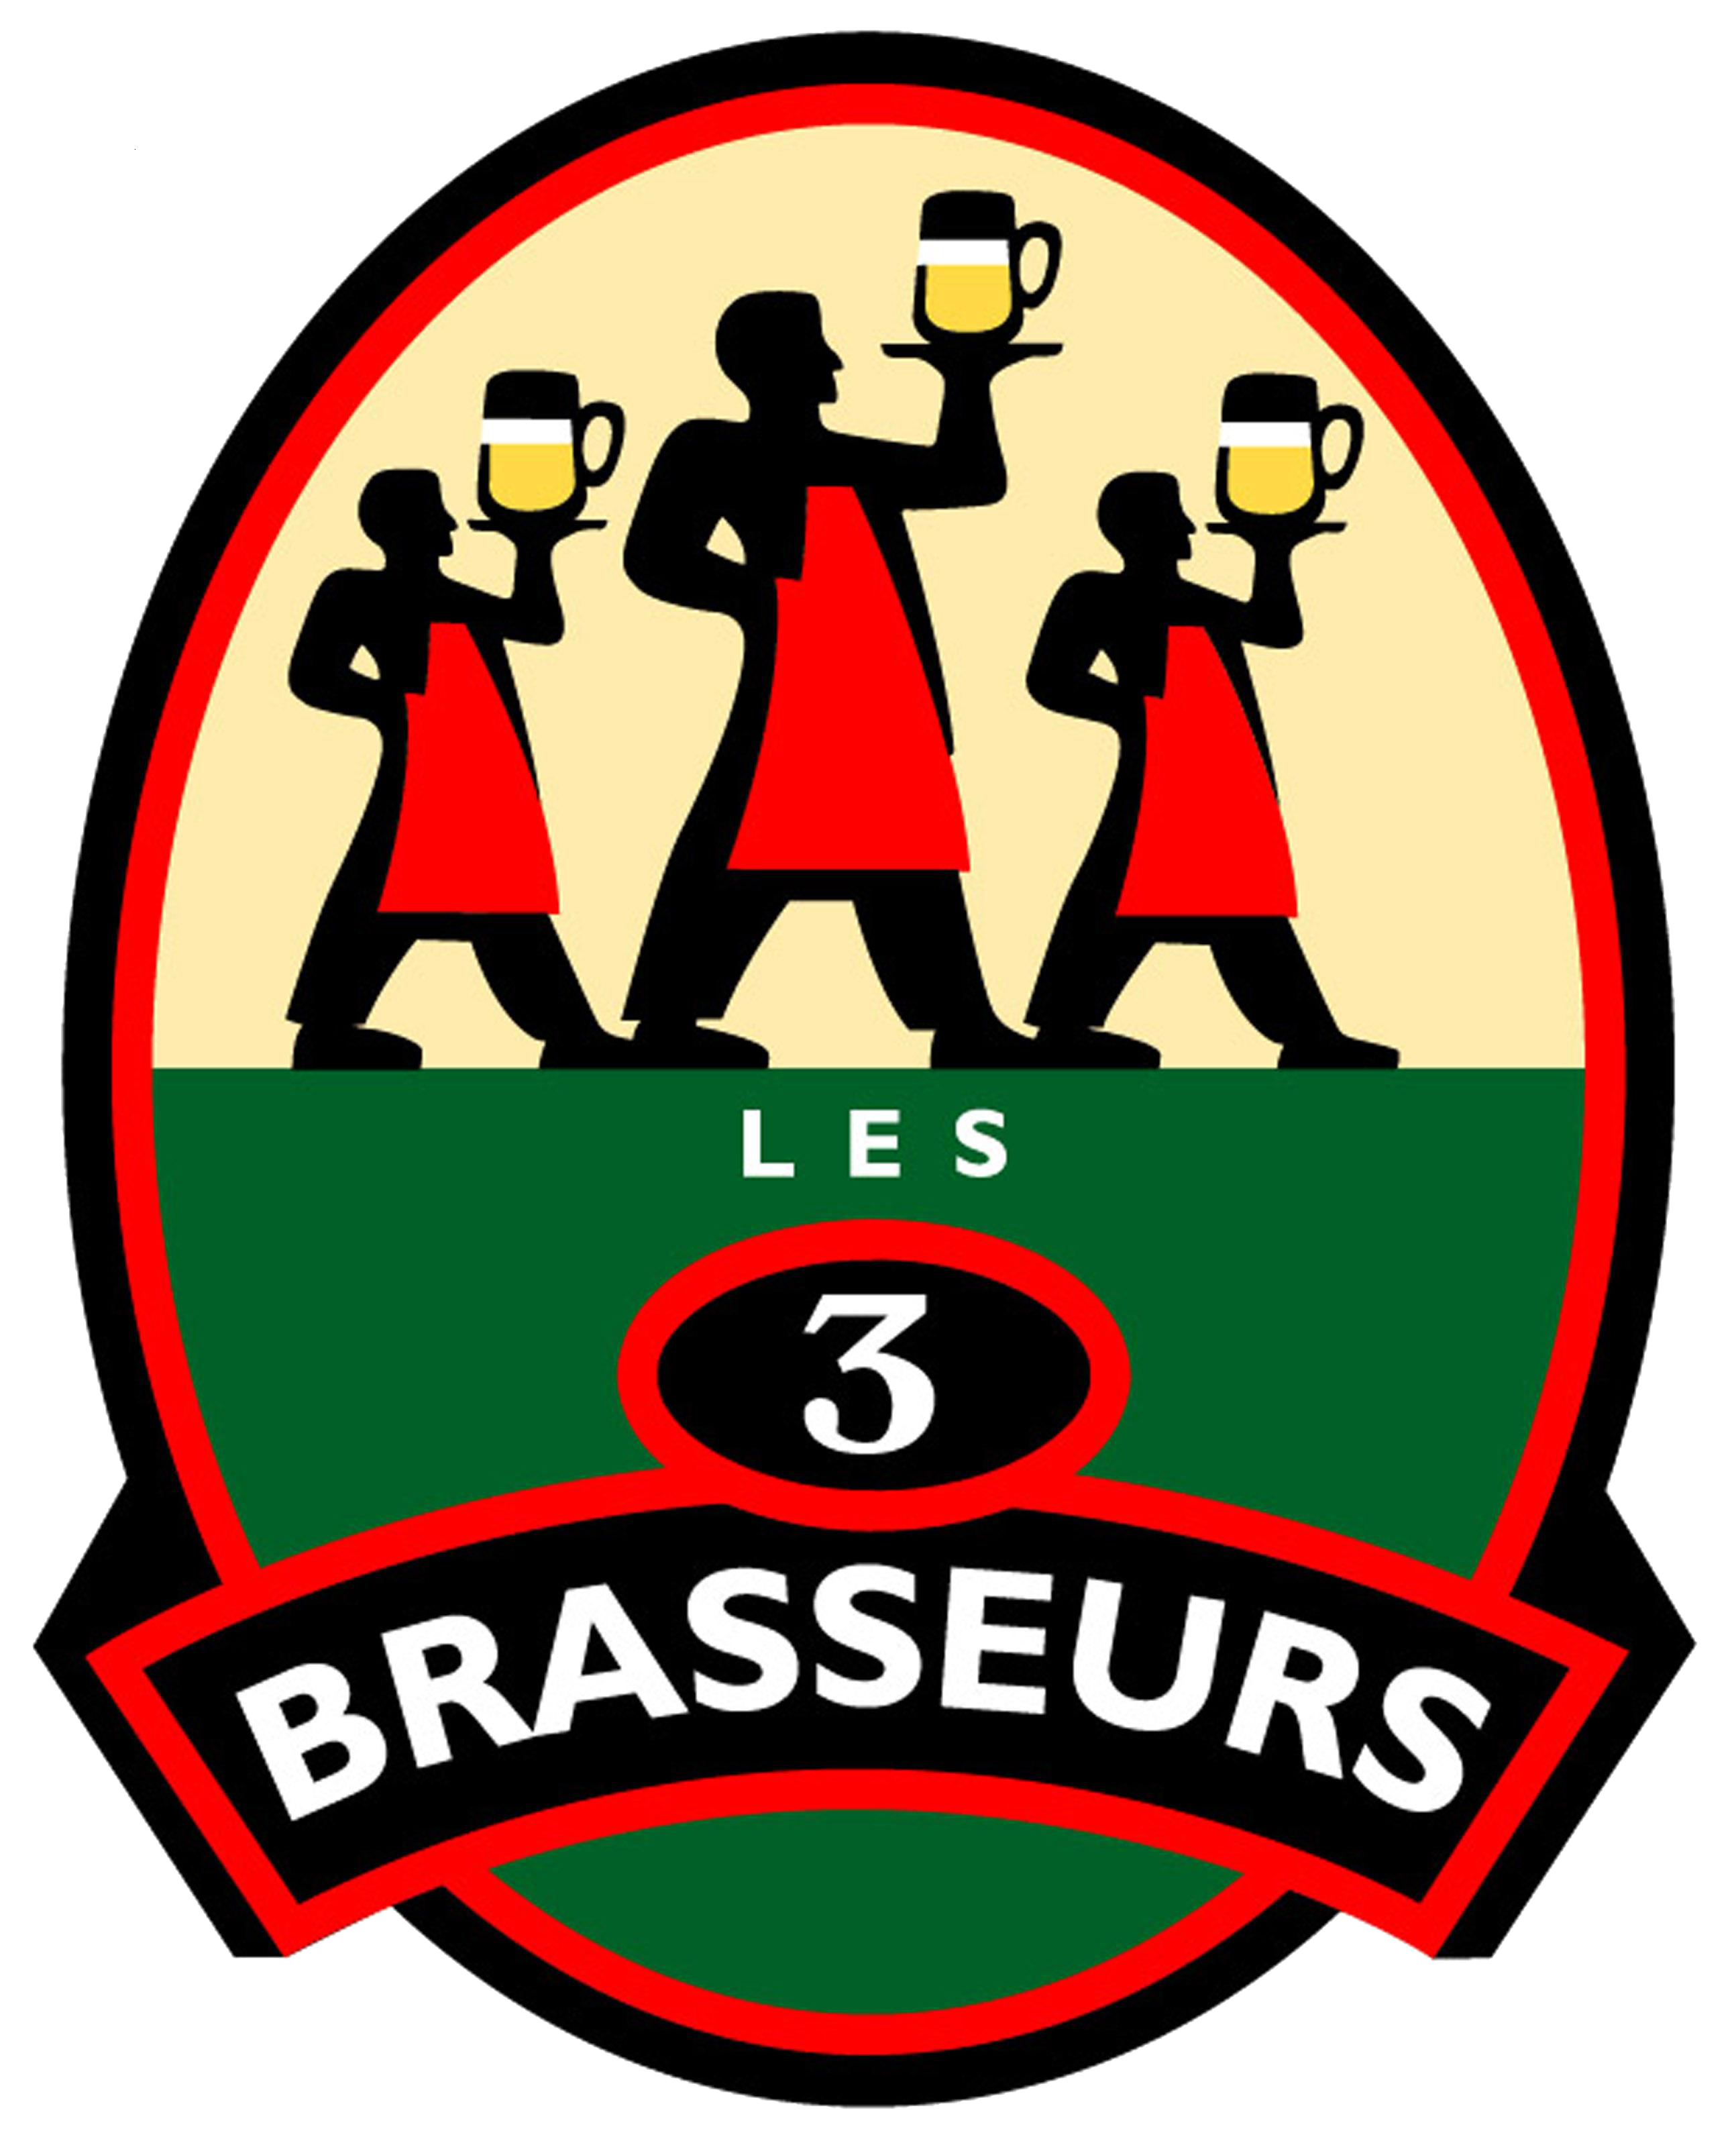 Les 3 Brasseurs Compiègne